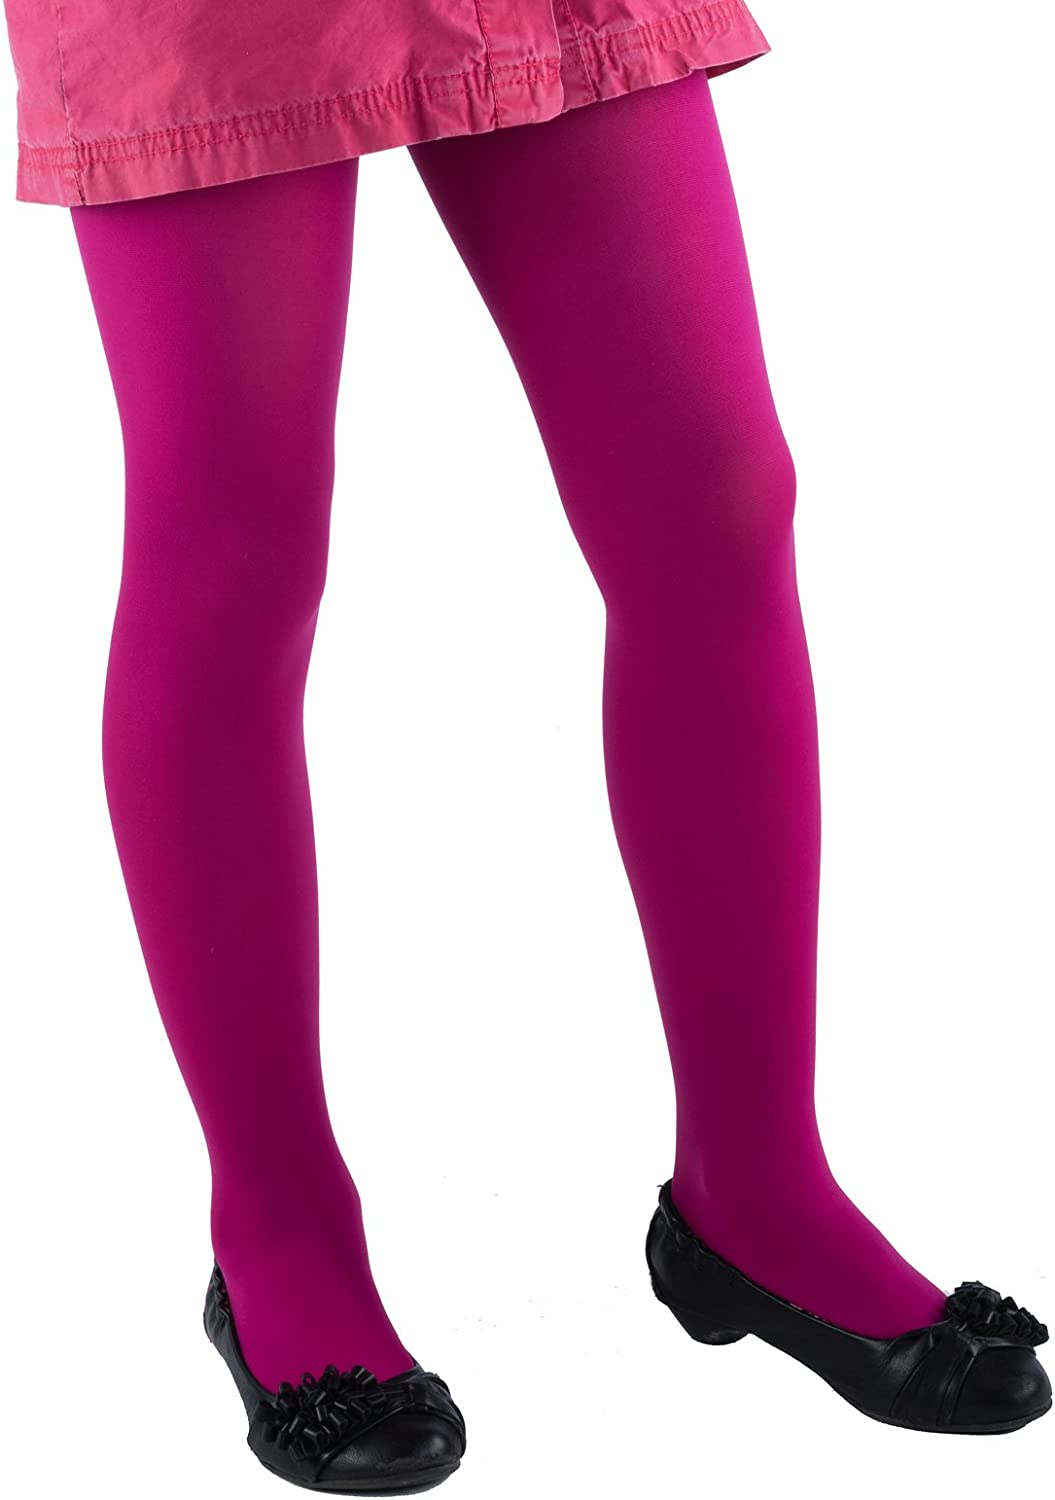 13 Years Girls Tights School Uniform Microfibre 40 Wide Range Of Colours Sizes 3 Years